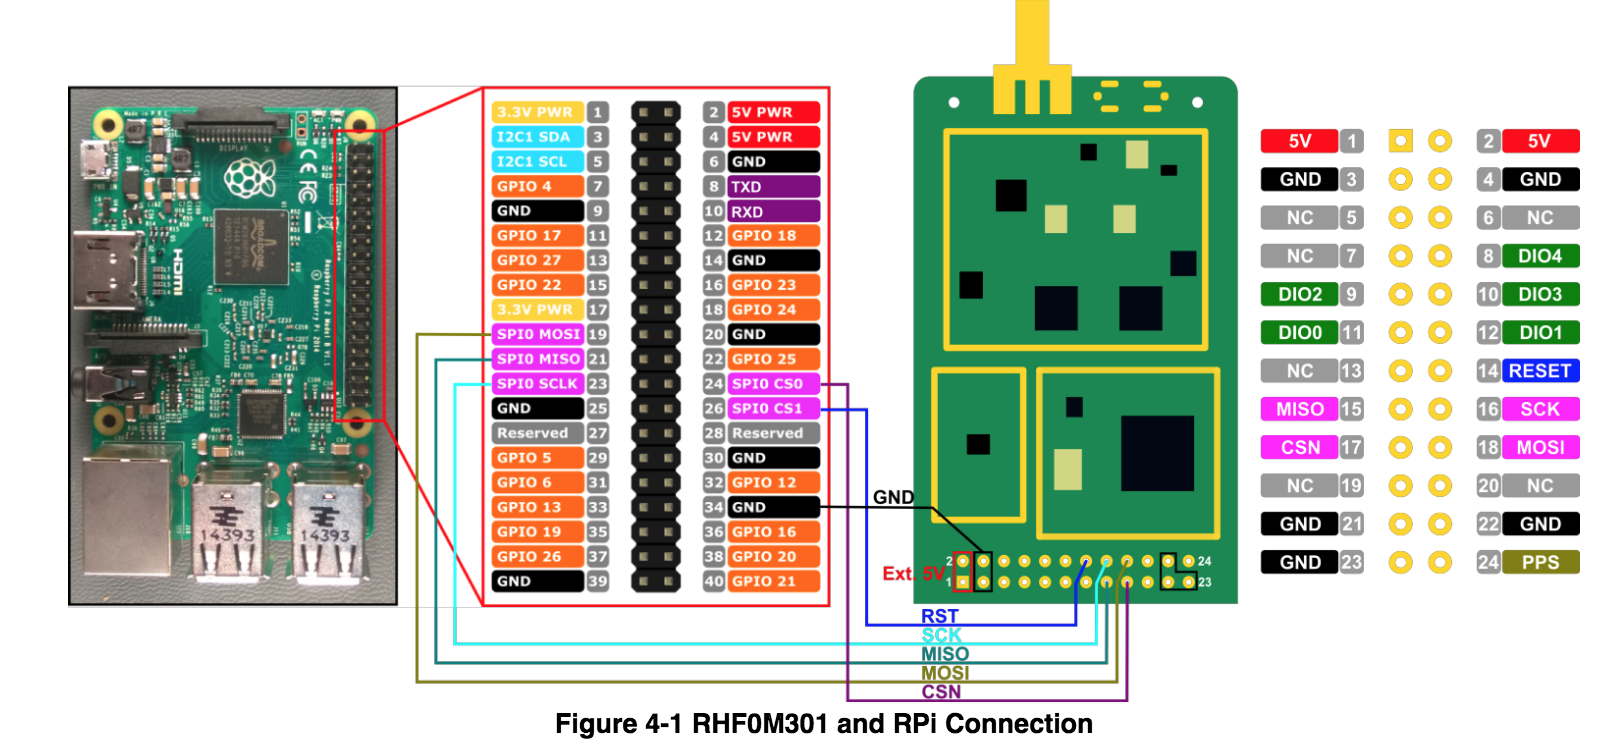 Github Ibm Smart City Gateway Create A Lorawan Based Wiring Diagram For Laptop Battery Manually The Gpio Pins To Concentrator Can Be Bit Difficult As Its Likely Misplace Connection Since Hardware Is Not Labeled